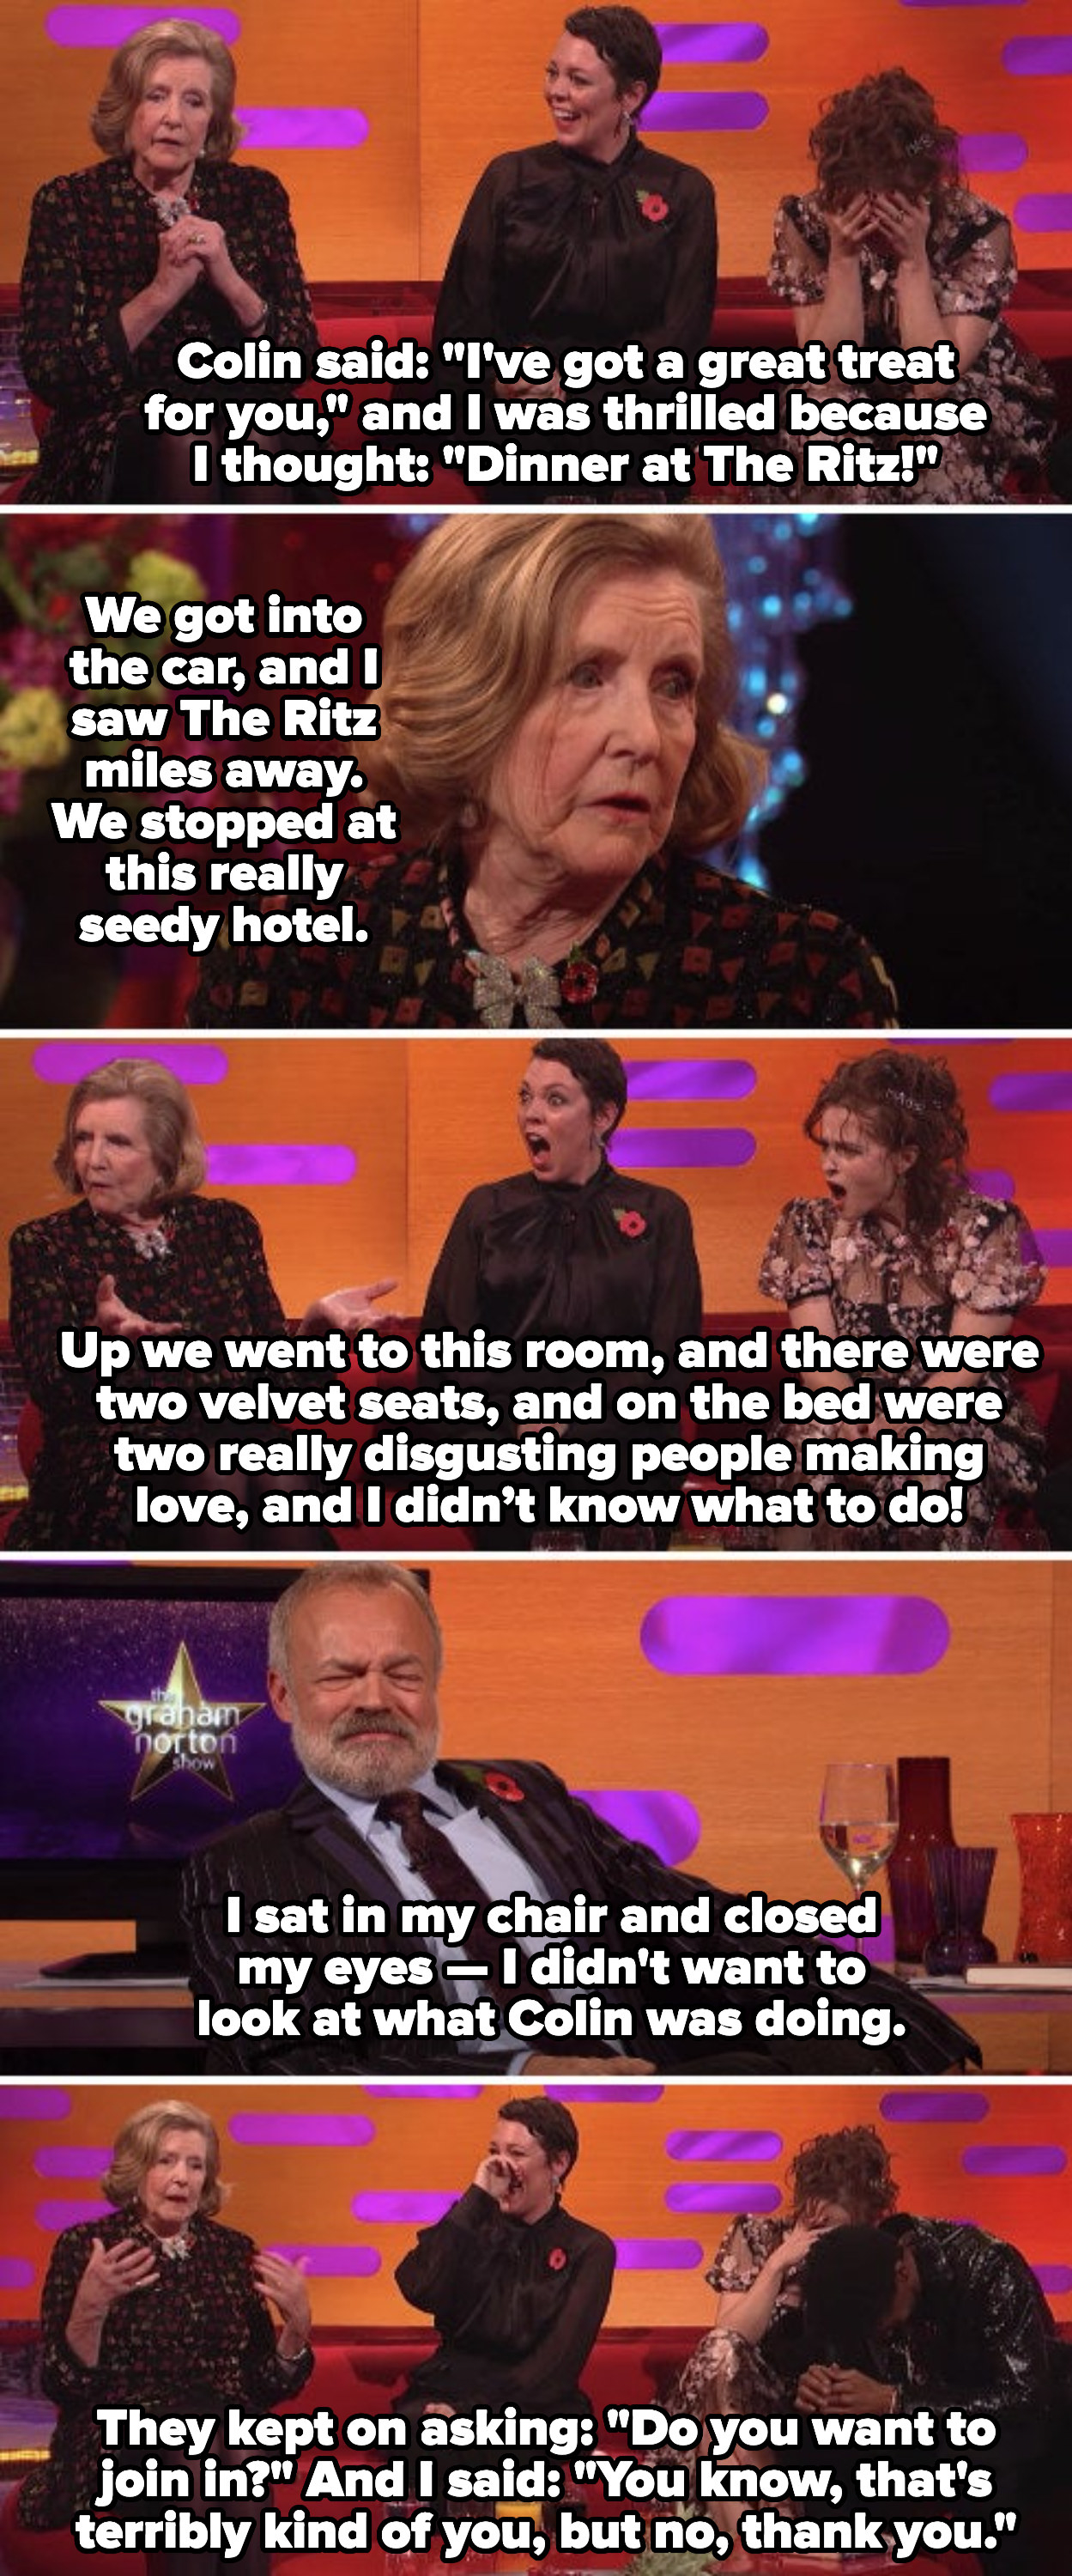 Lady Anne Glenconner describing how uncomfortable she felt in the brothel, and how the two people having sex in front of her repeatedly asked her to join in